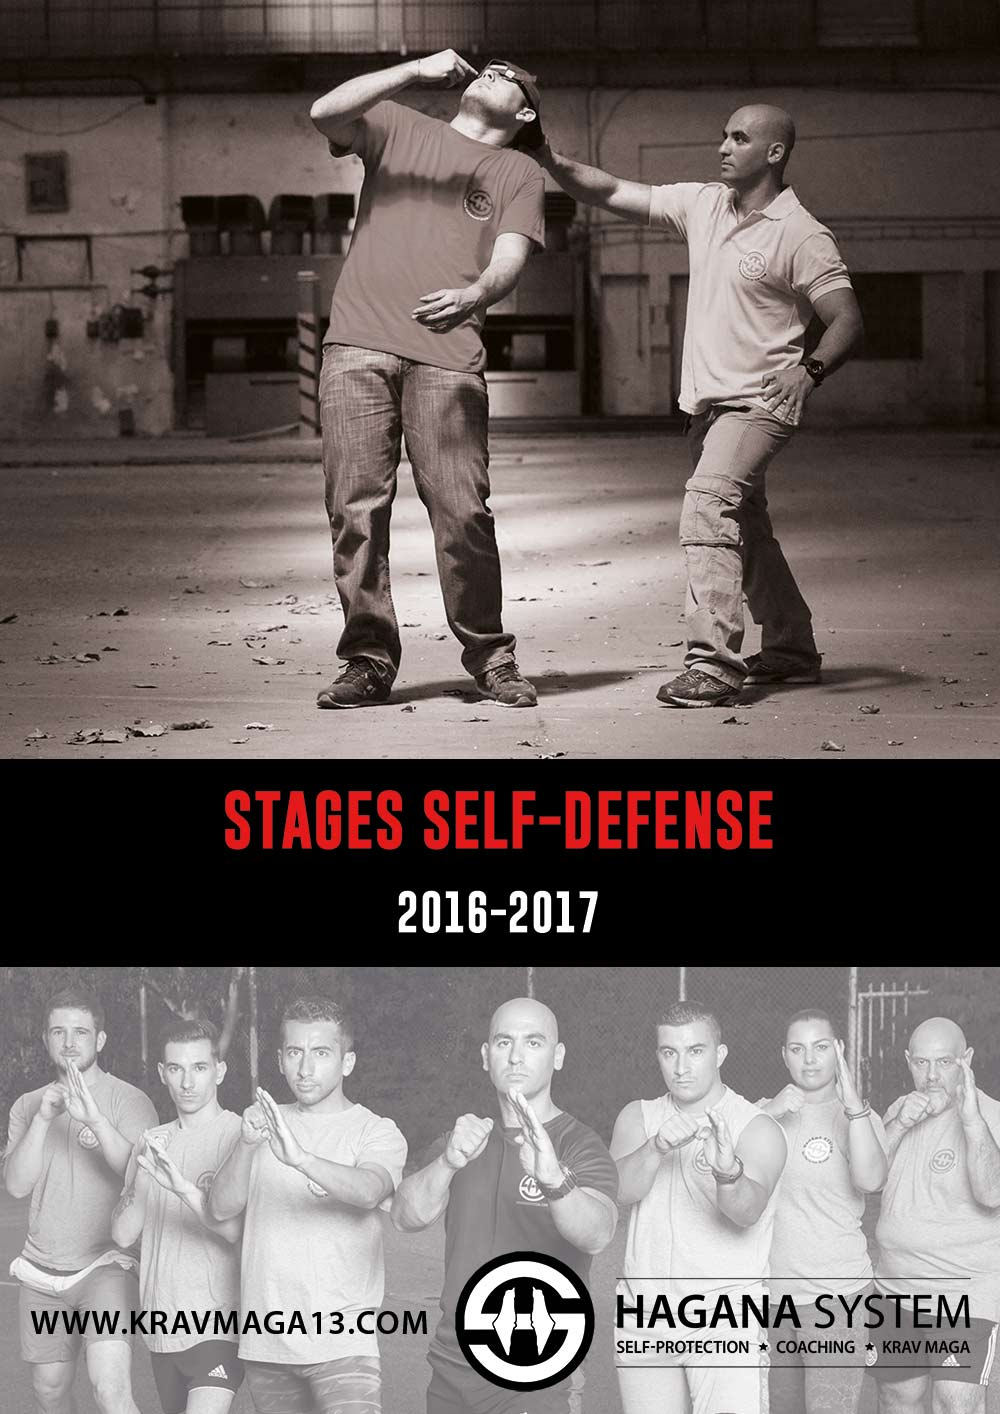 Stages de Krava maga et self-defense à Marseille